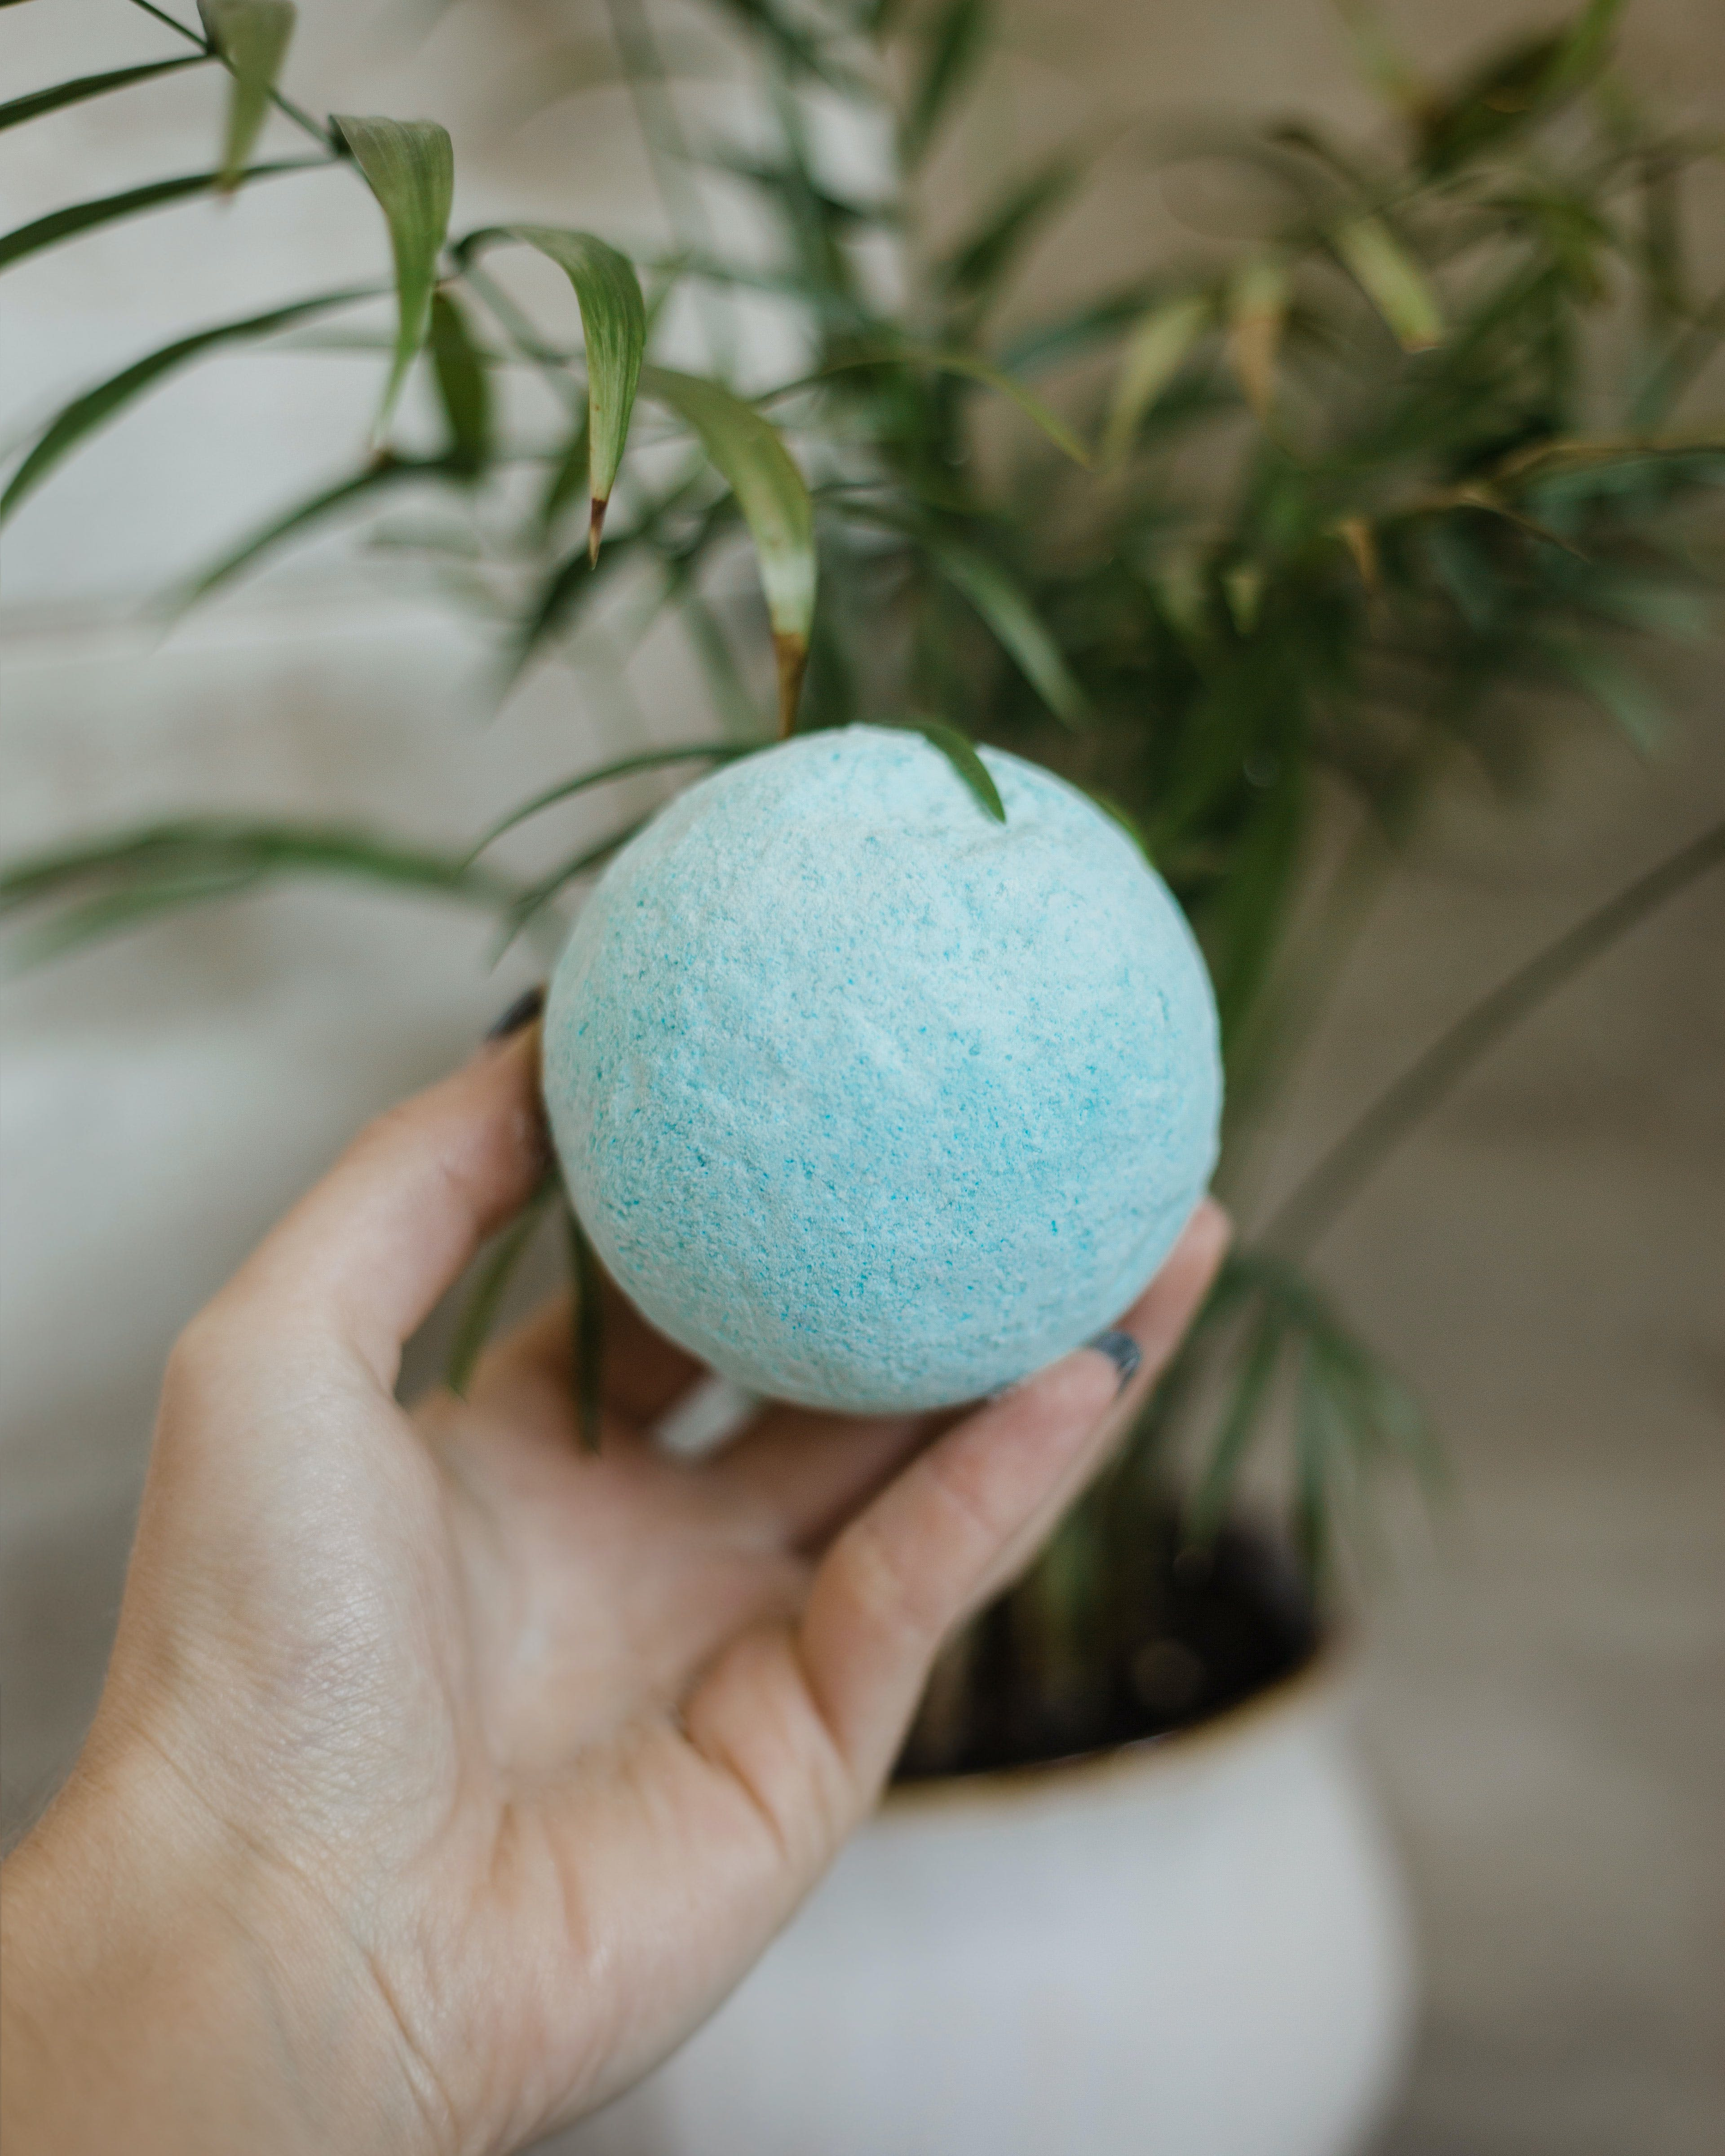 Add More Than Just Bubbles To The Tub With The Best CBD Bath Bombs14 How to Get the Most Out Of Your Stash with the Best Weed Grinders